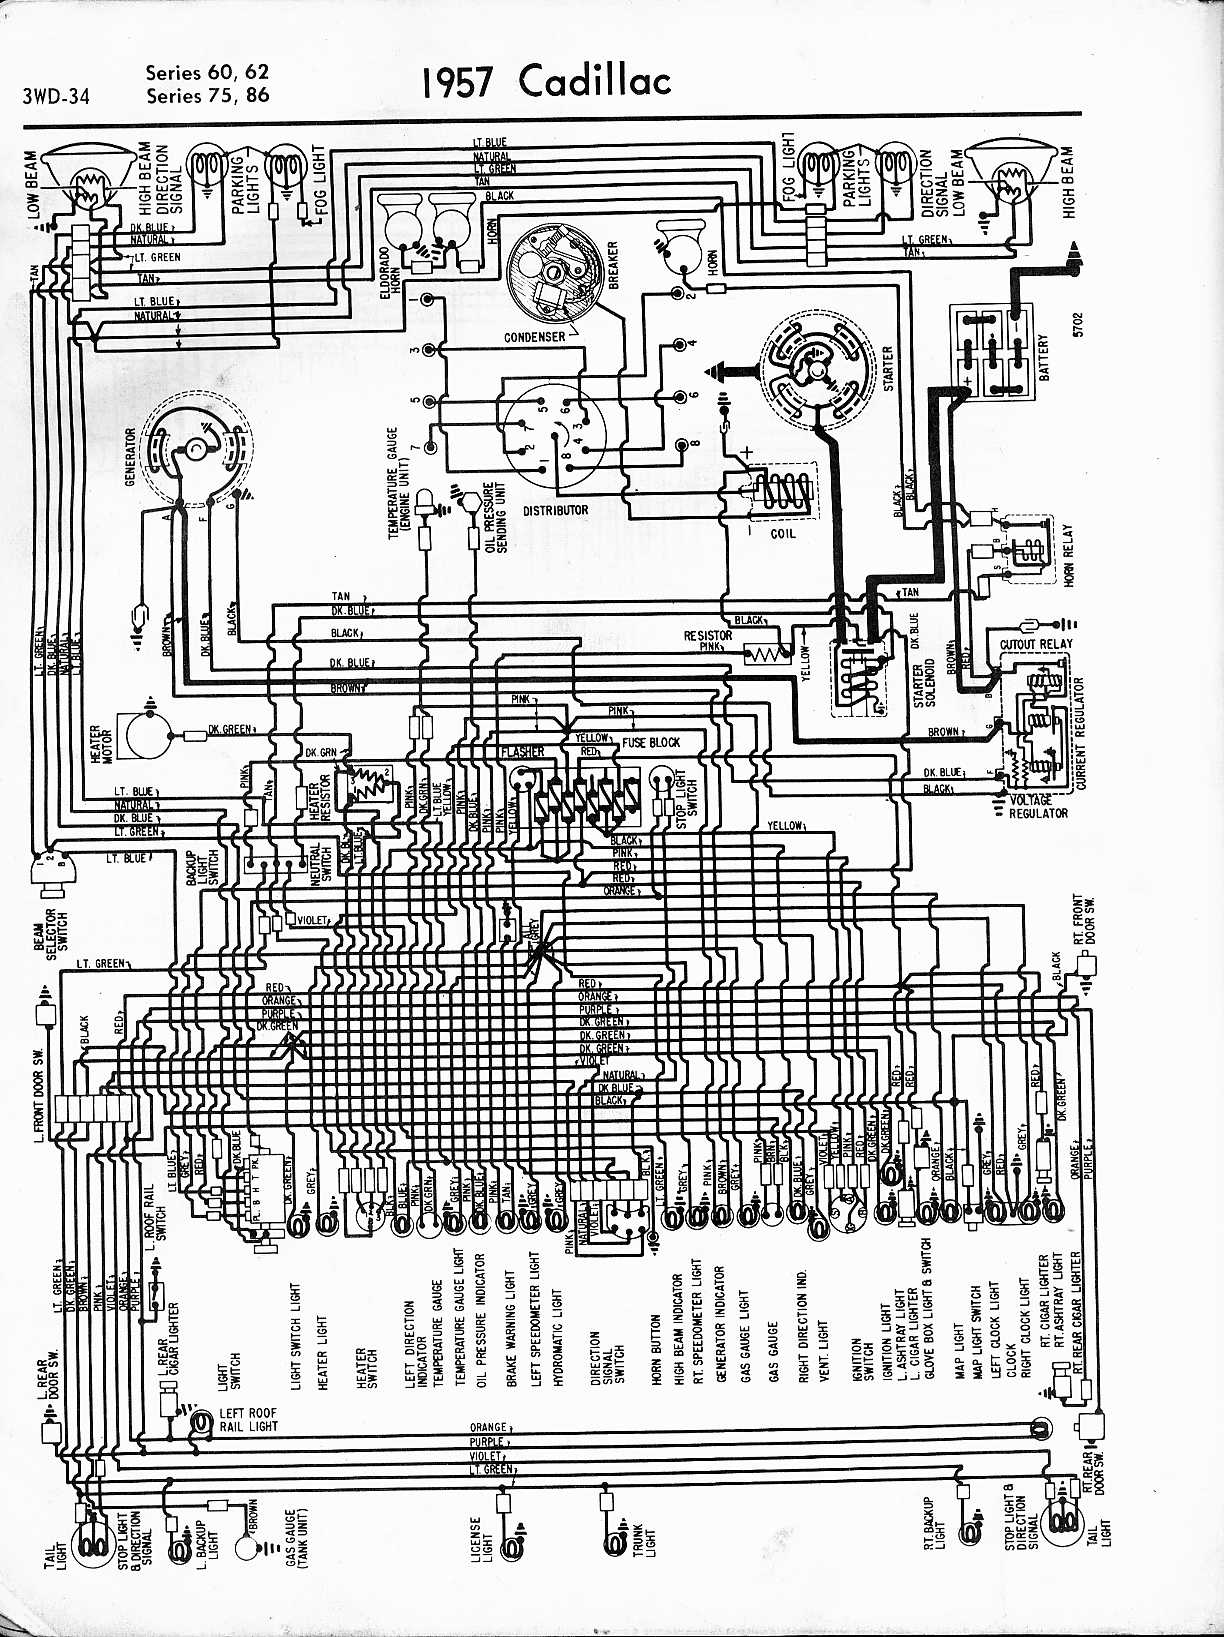 Cadillac Wiring Diagrams: 1957-1965 on ignition starter switch wiring diagram, headlight switch wiring diagram, electrical switch wiring diagram, windshield wiper switch ford, gm wiper switch wiring diagram, windshield wiper wiring diagram for chevy truck, combination switch wiring diagram, jeep cj wiper switch wiring diagram, relay switch wiring diagram, hazard switch wiring diagram, window switch wiring diagram, fan switch wiring diagram, brake switch wiring diagram, battery switch wiring diagram, dimmer switch wiring diagram, neutral safety switch wiring diagram, oil pressure switch wiring diagram, winch switch wiring diagram, windshield wiper switch repair, sunroof switch wiring diagram,